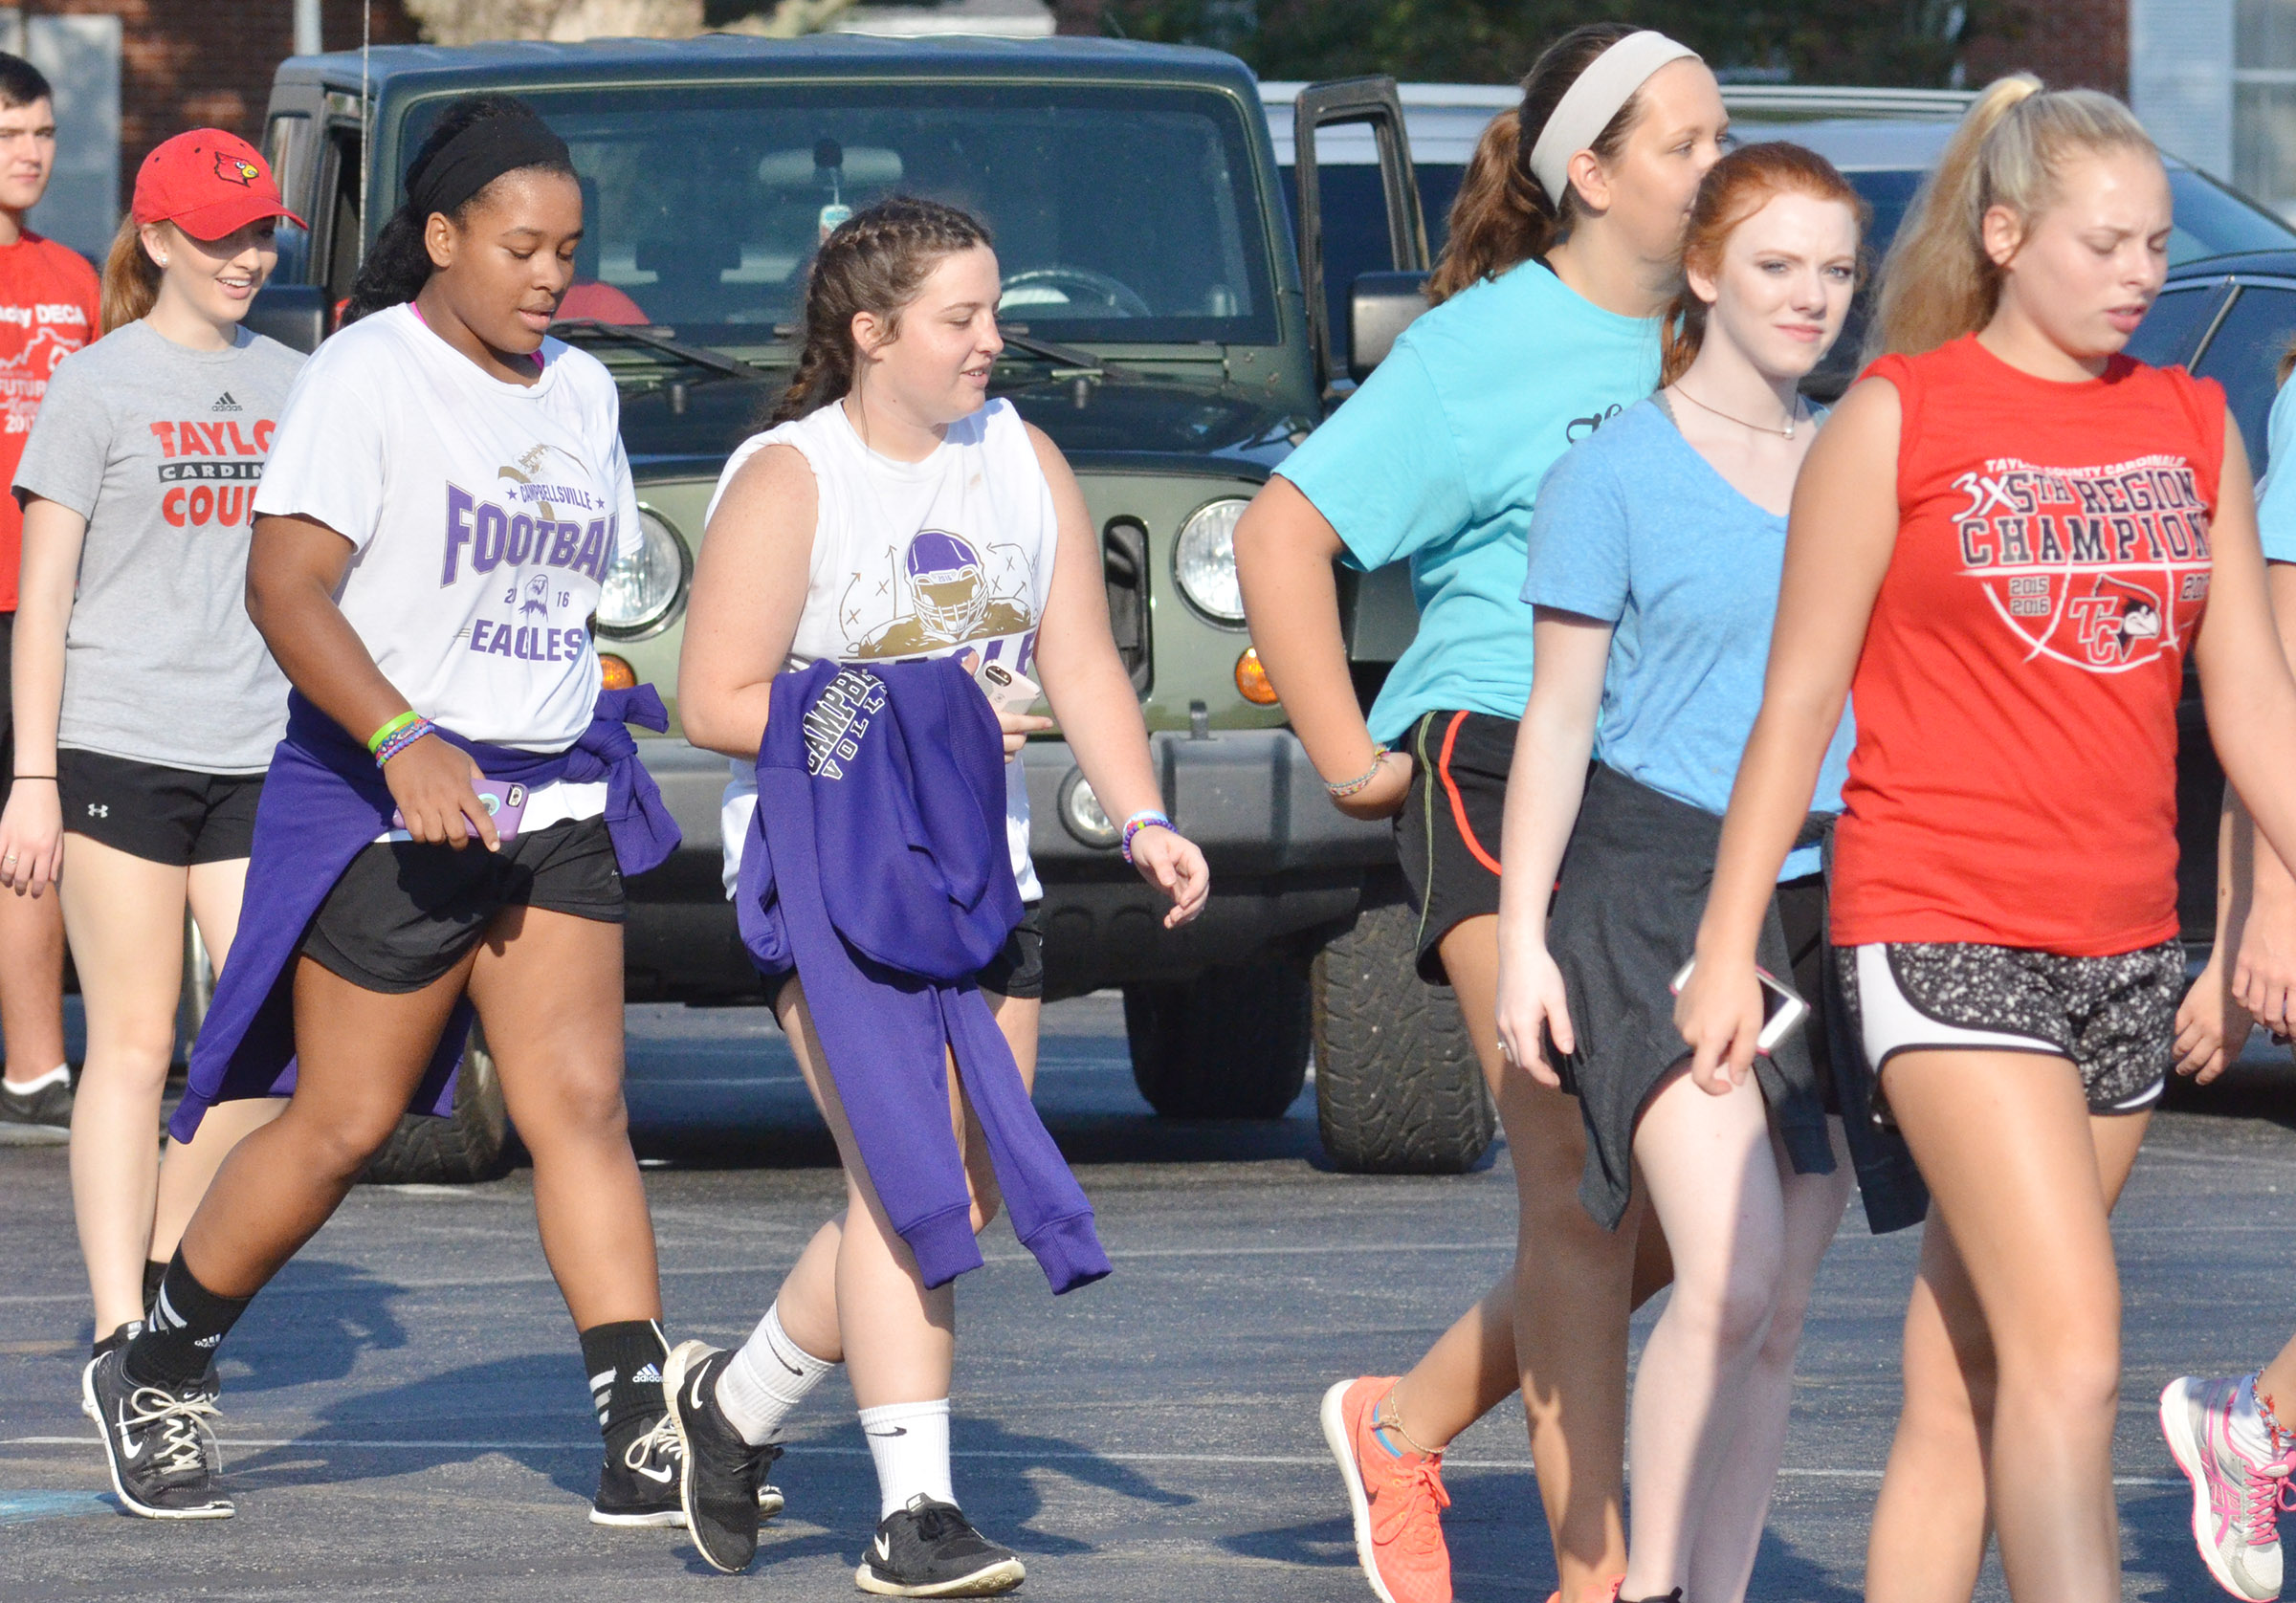 CHS seniors Kayla Young, second from left, and Caitlin Bright, third from left, finish the 5K race.